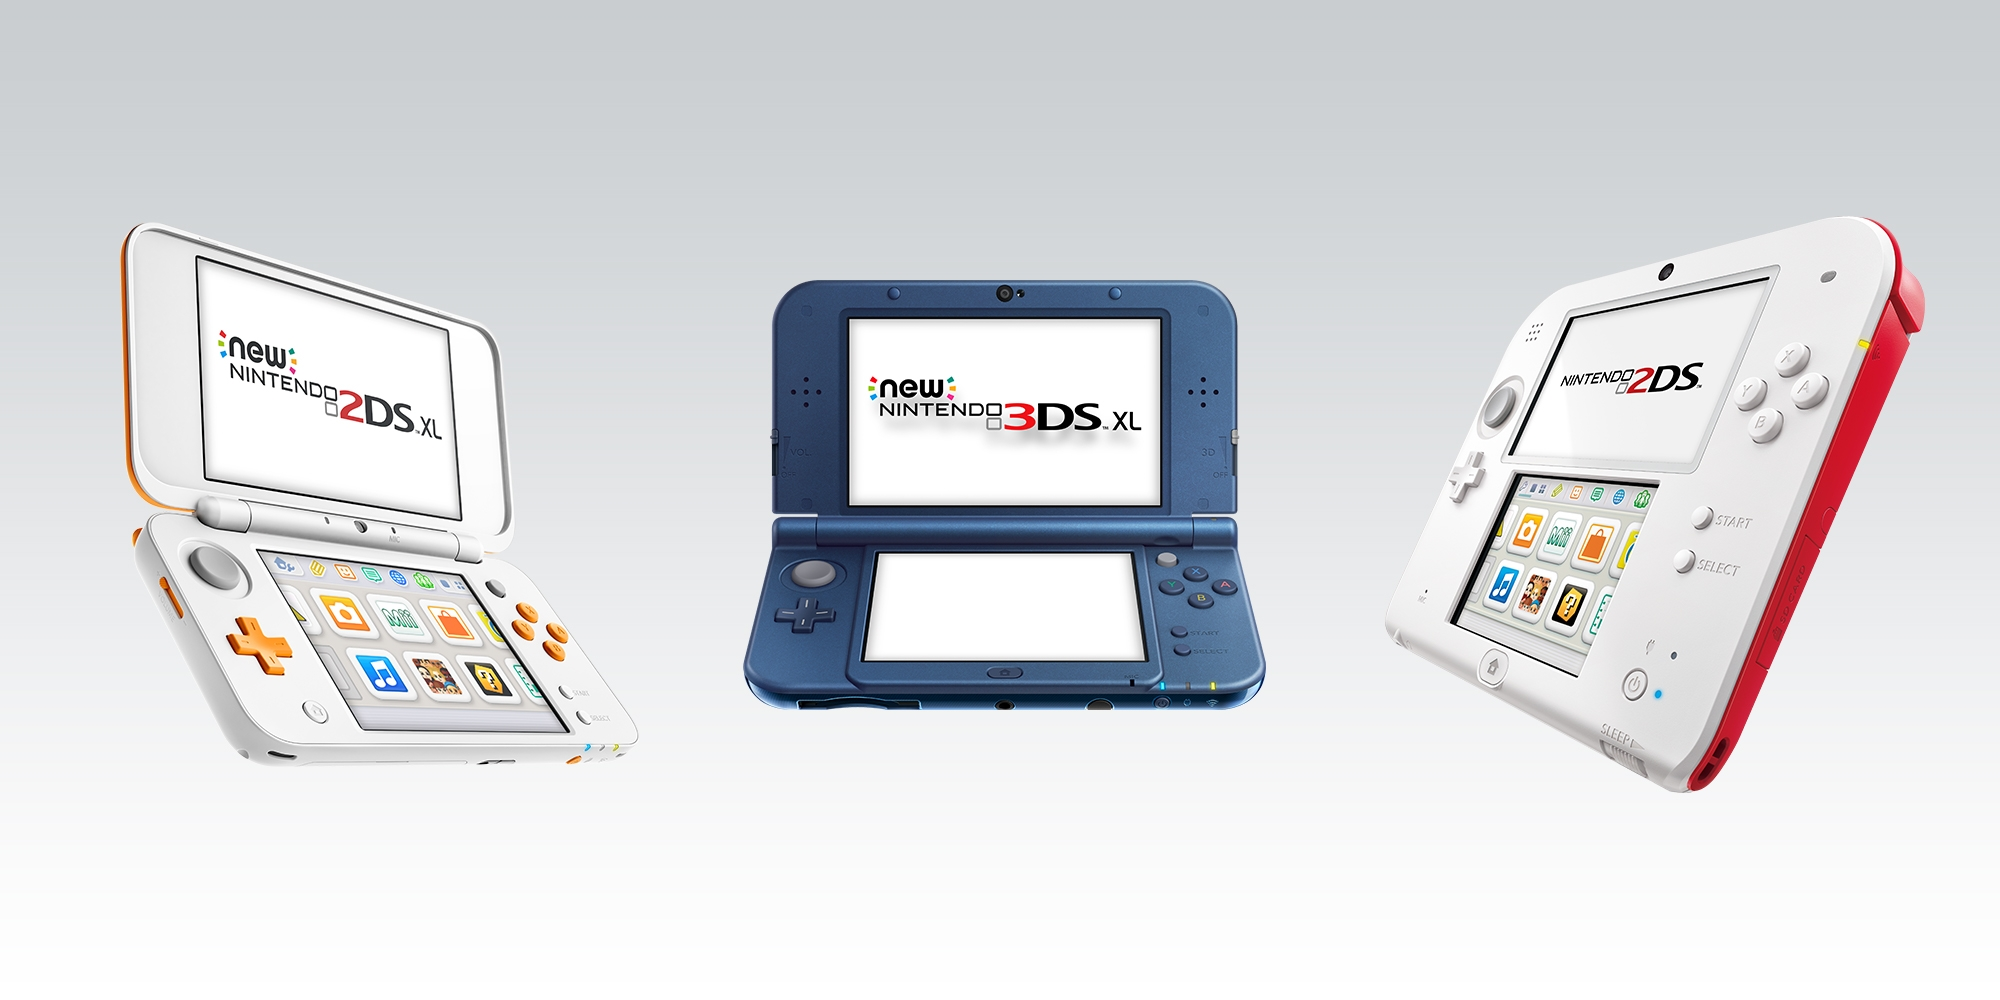 Nintendo 3DS Family